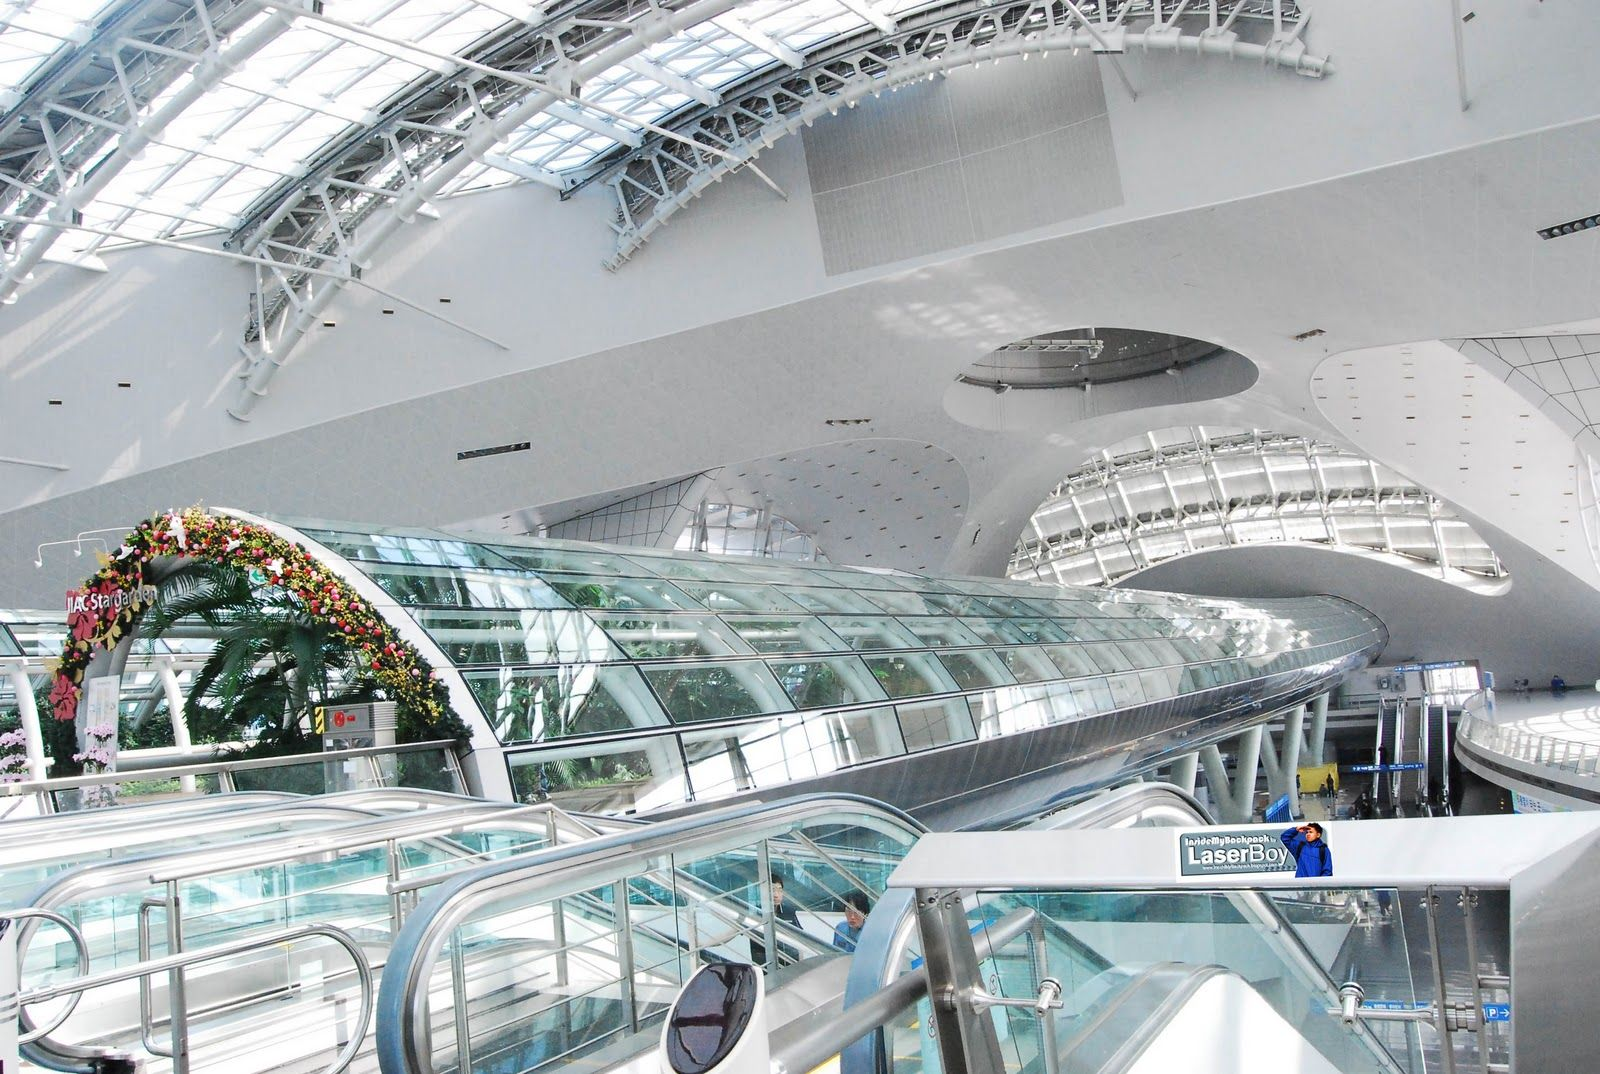 Pin by Mohamed Medhat on Air Architecture | International airport ...